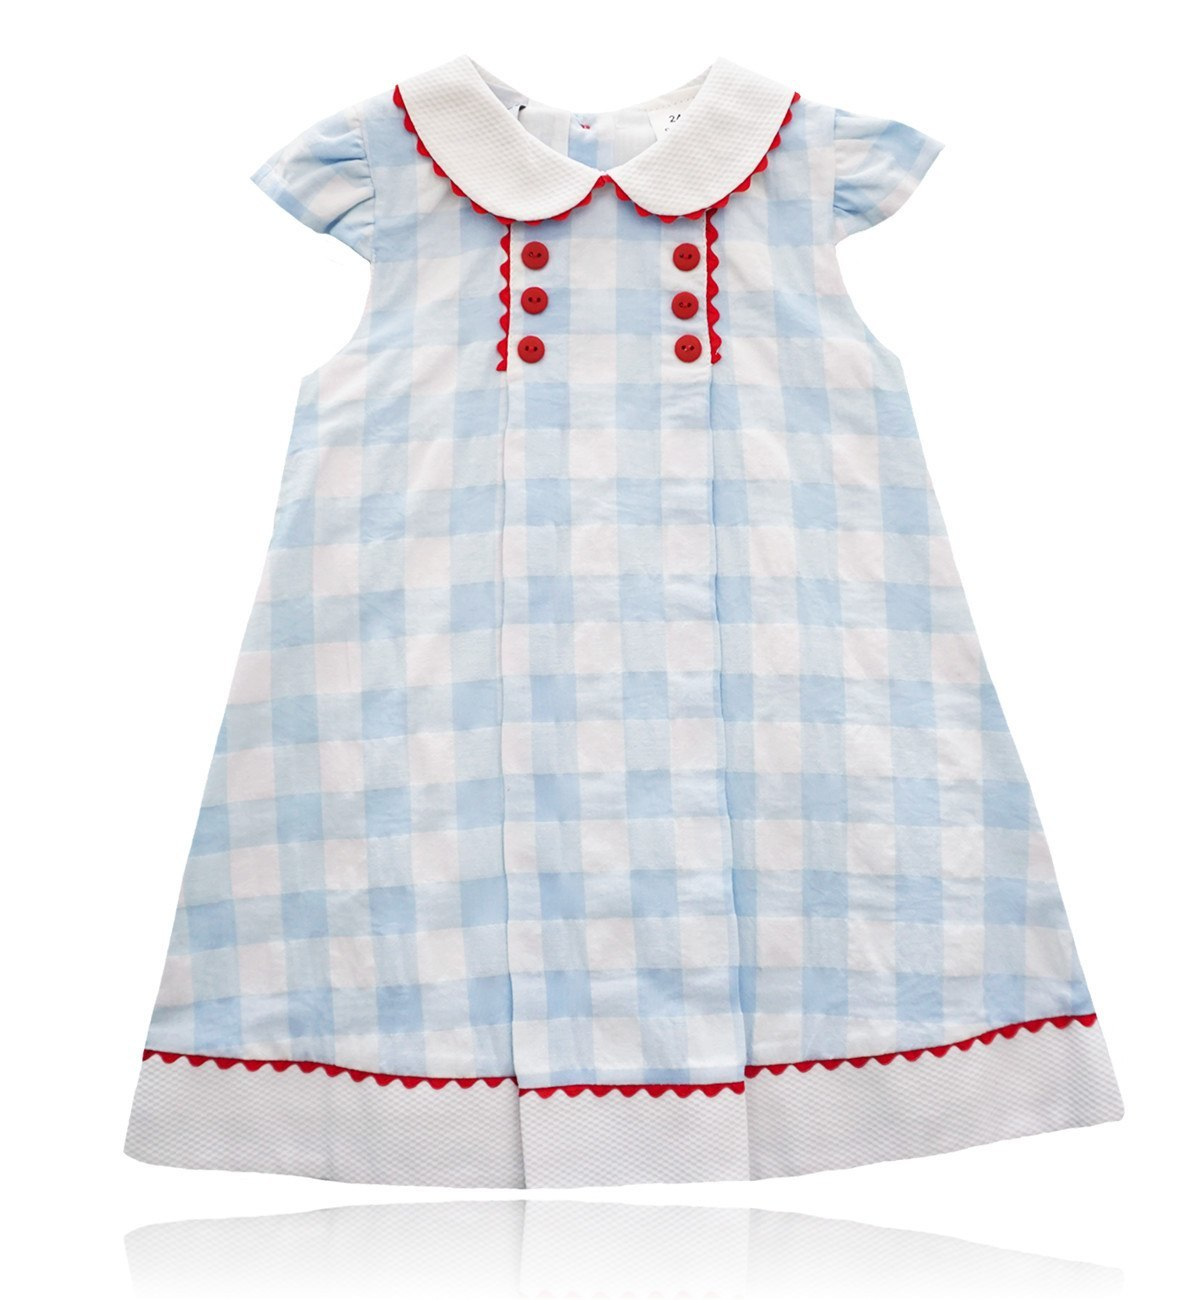 Spanish baby clothes | baby Dress | Blue & white check dress |babymaC  - 1